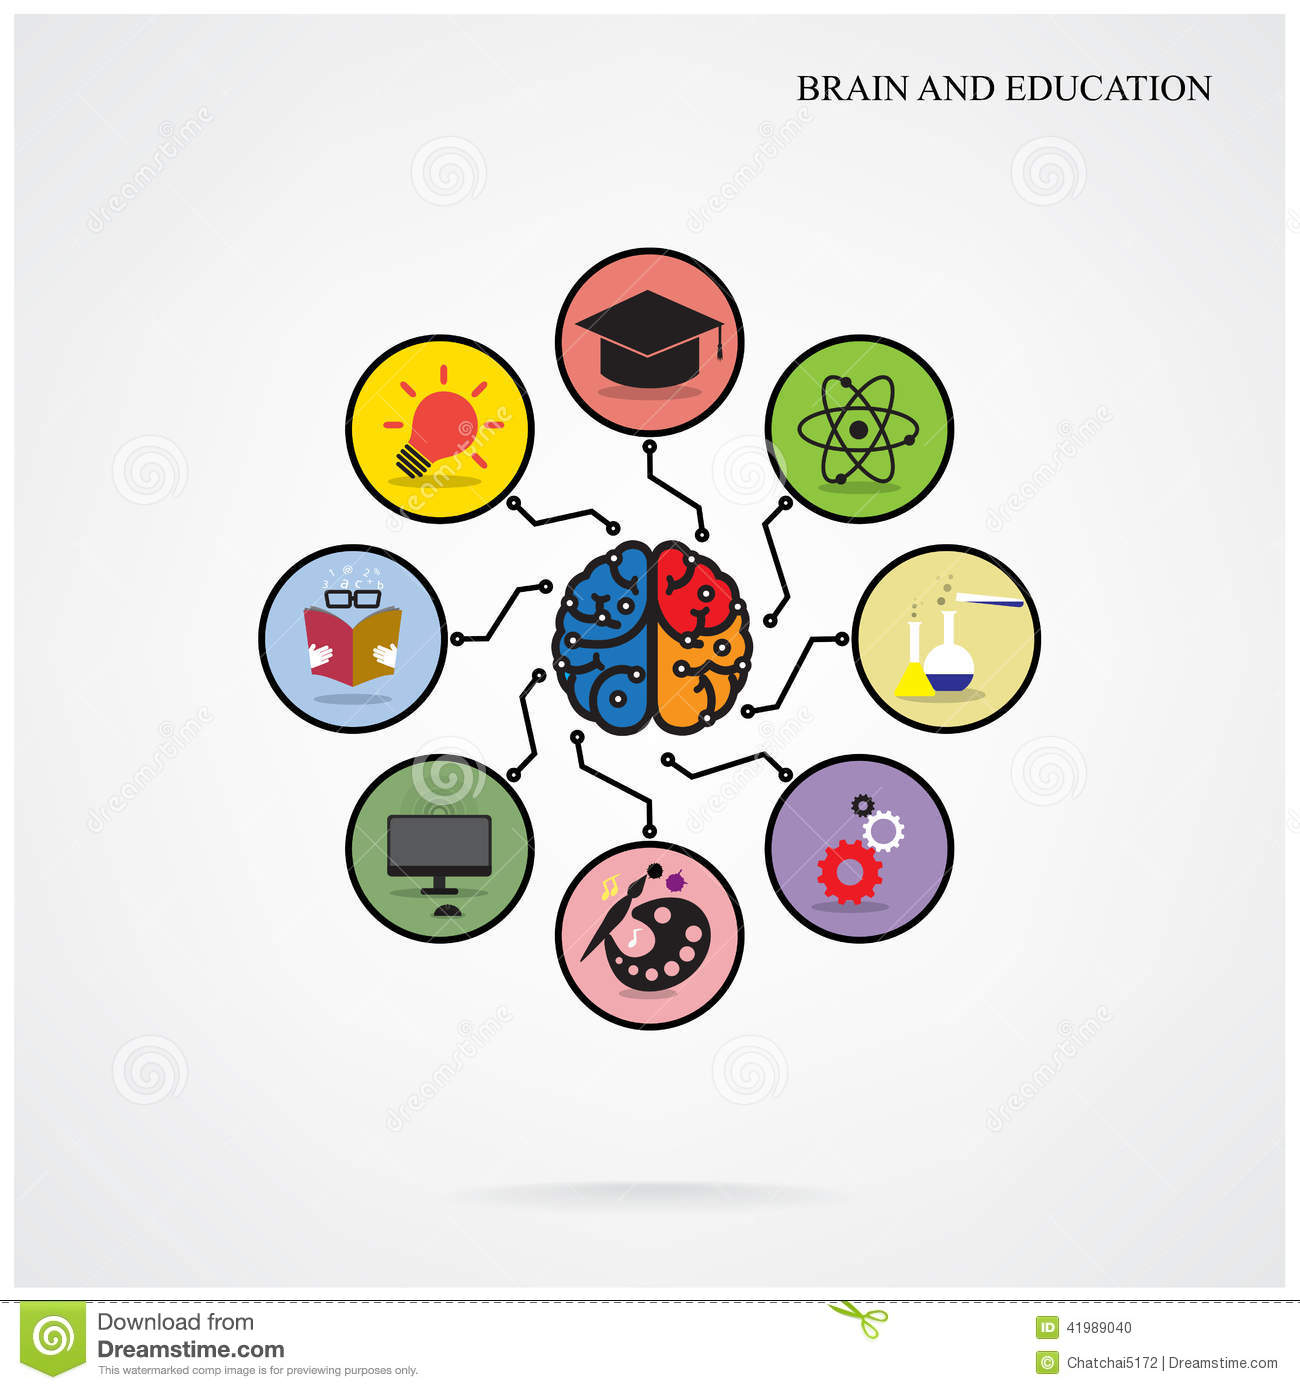 Poster design education - Infographic Template Creative Brain Education And Science Concep Stock Vector